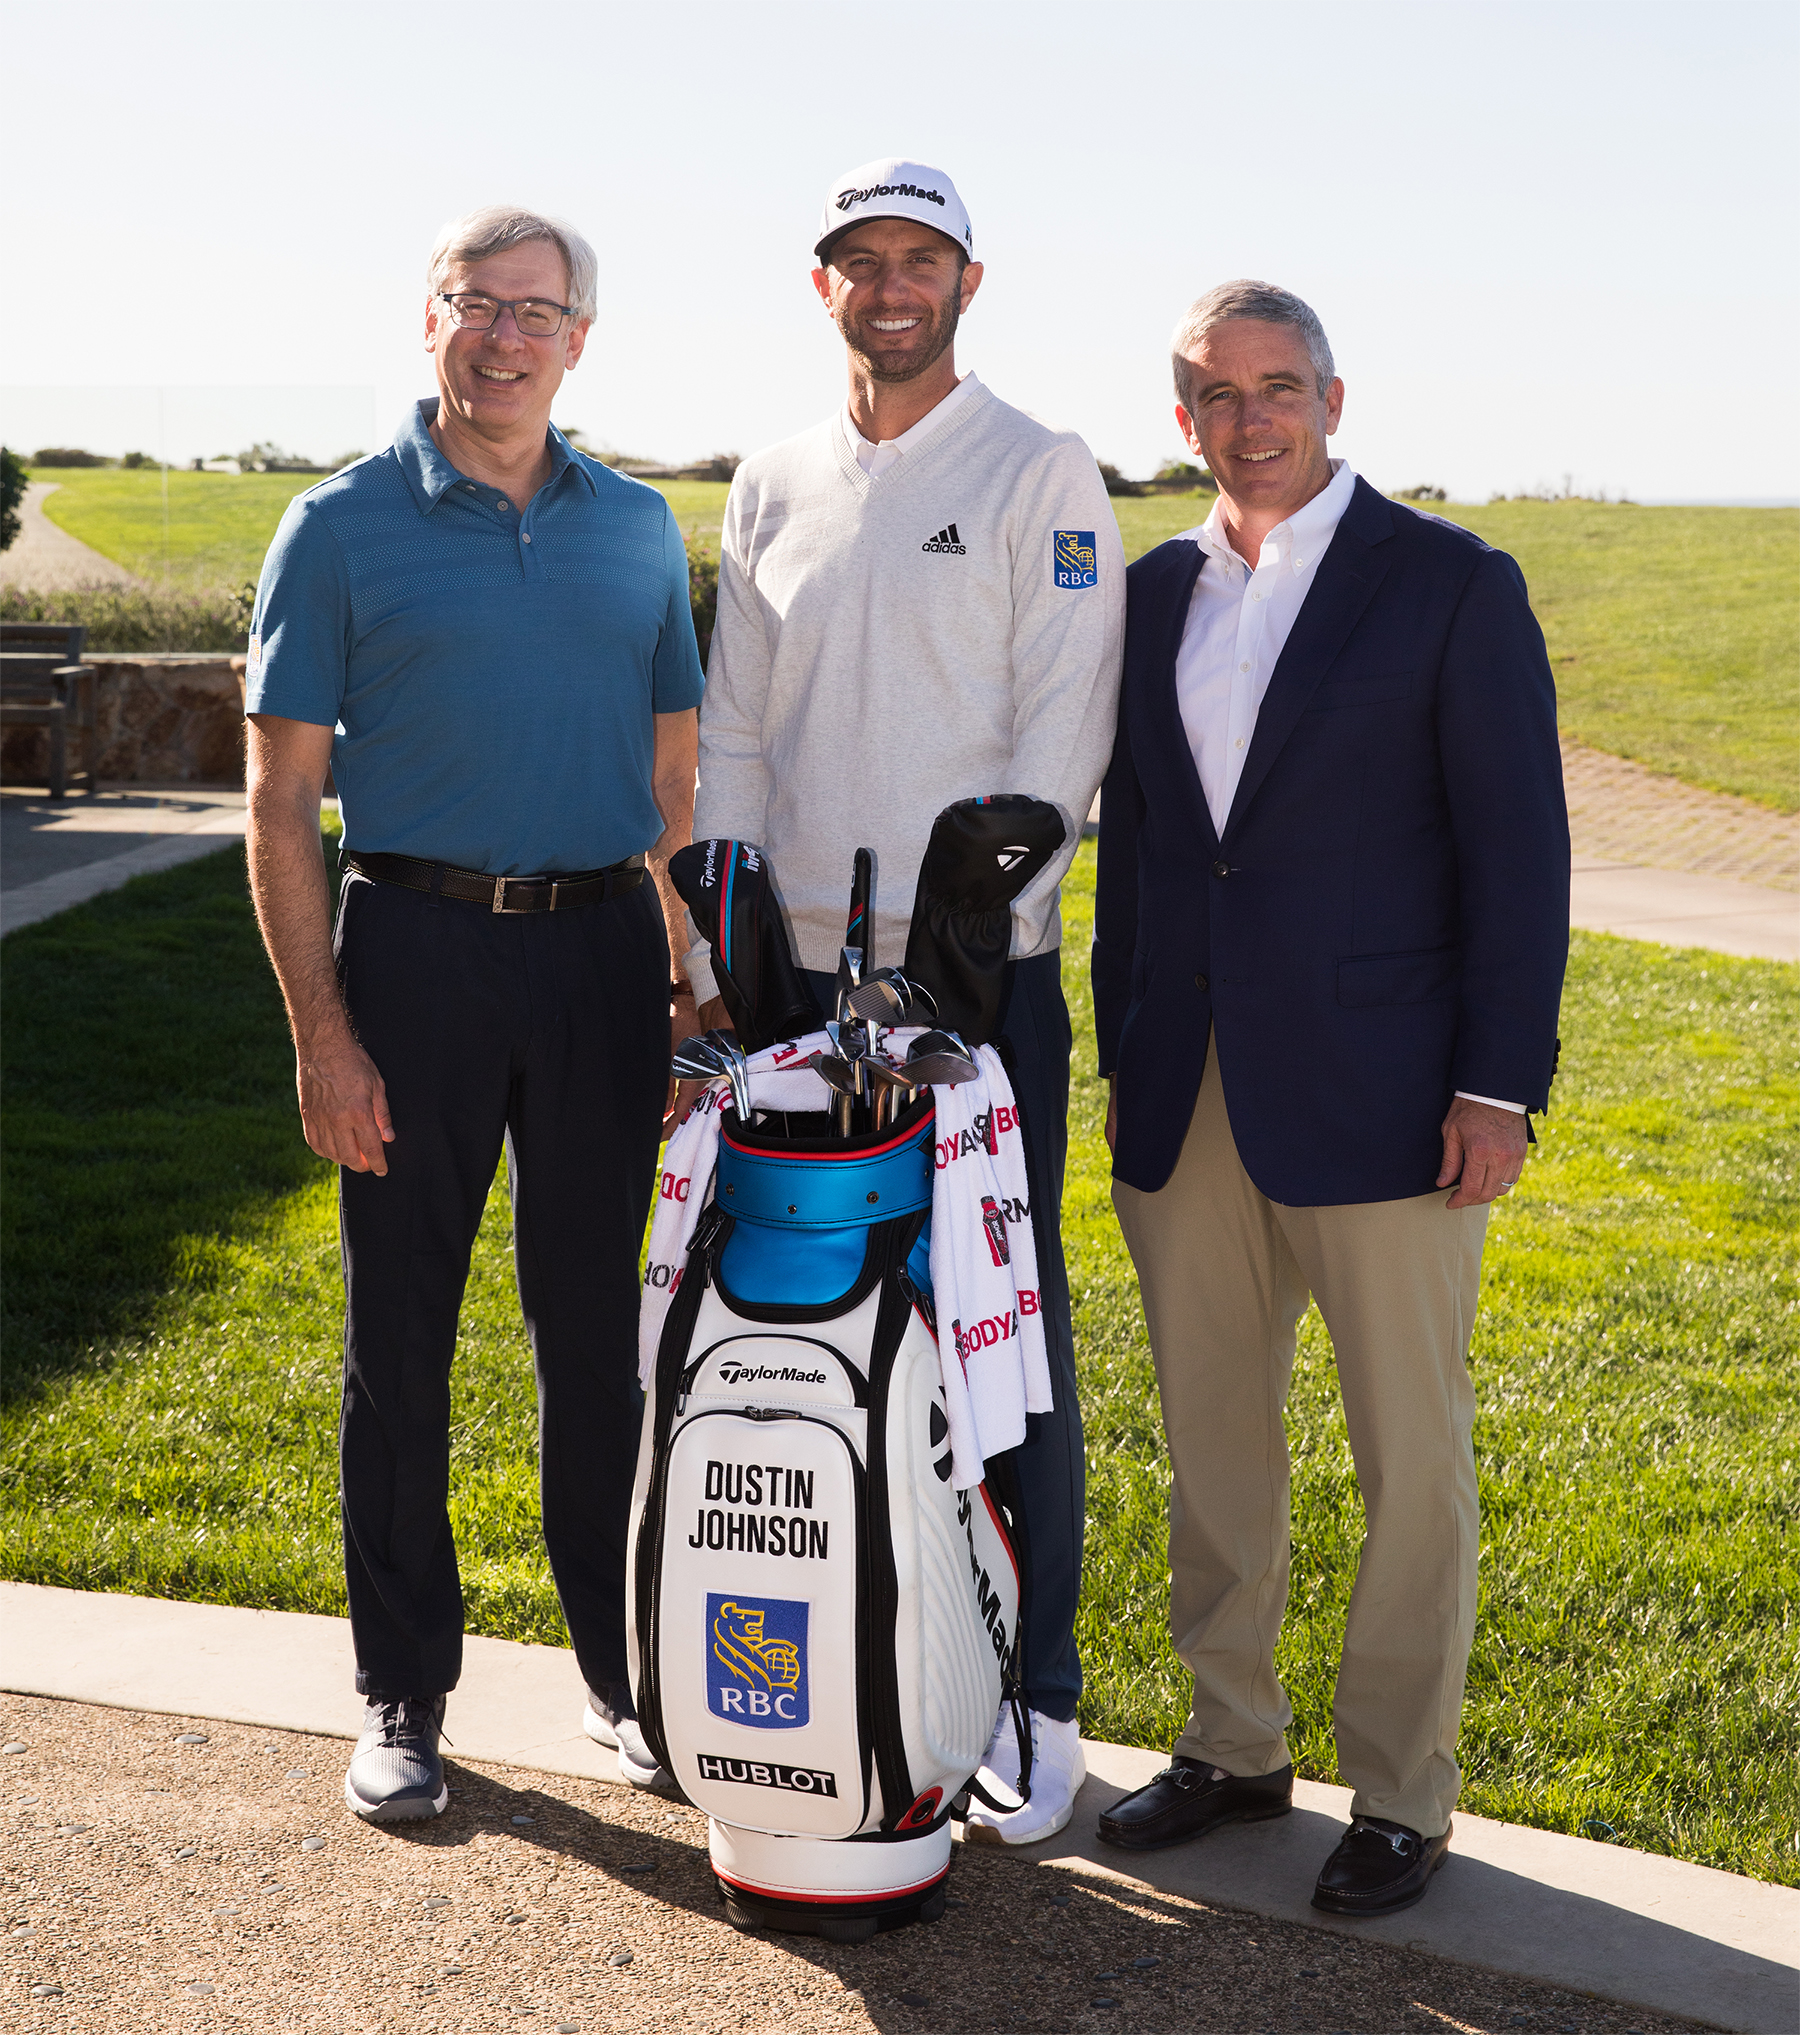 Dustin Johnson, PGA TOUR Golfer and newest RBC brand ambassador joined by Dave McKay, President and CEO, RBC and Jay Monahan, PGA TOUR Commissioner